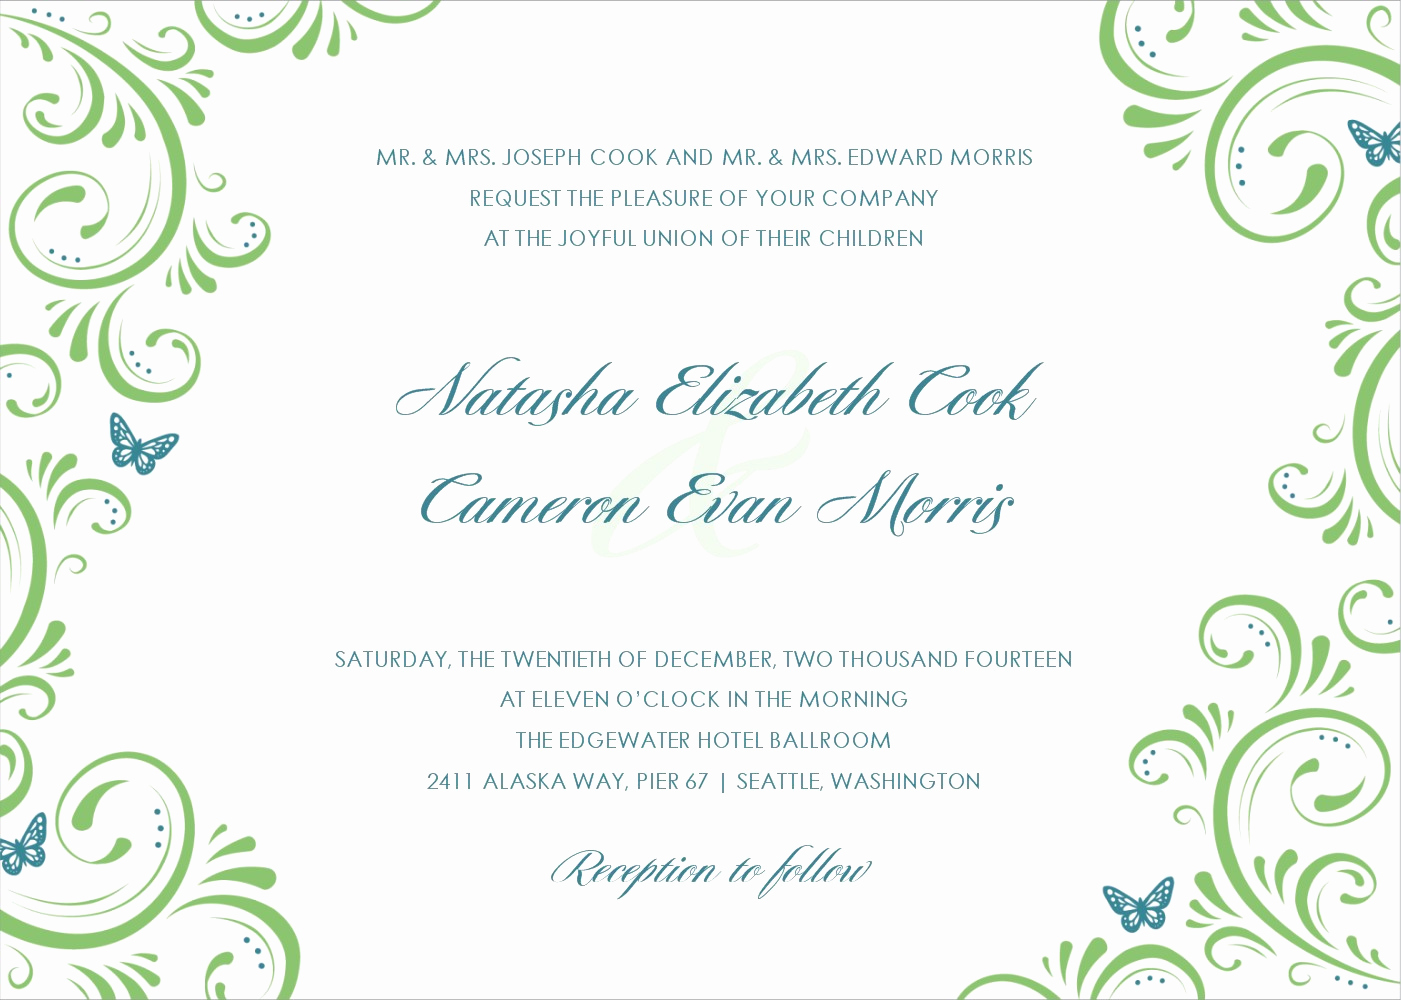 Printable Wedding Invitation Templates Fresh Applying the Wedding Planning Templates